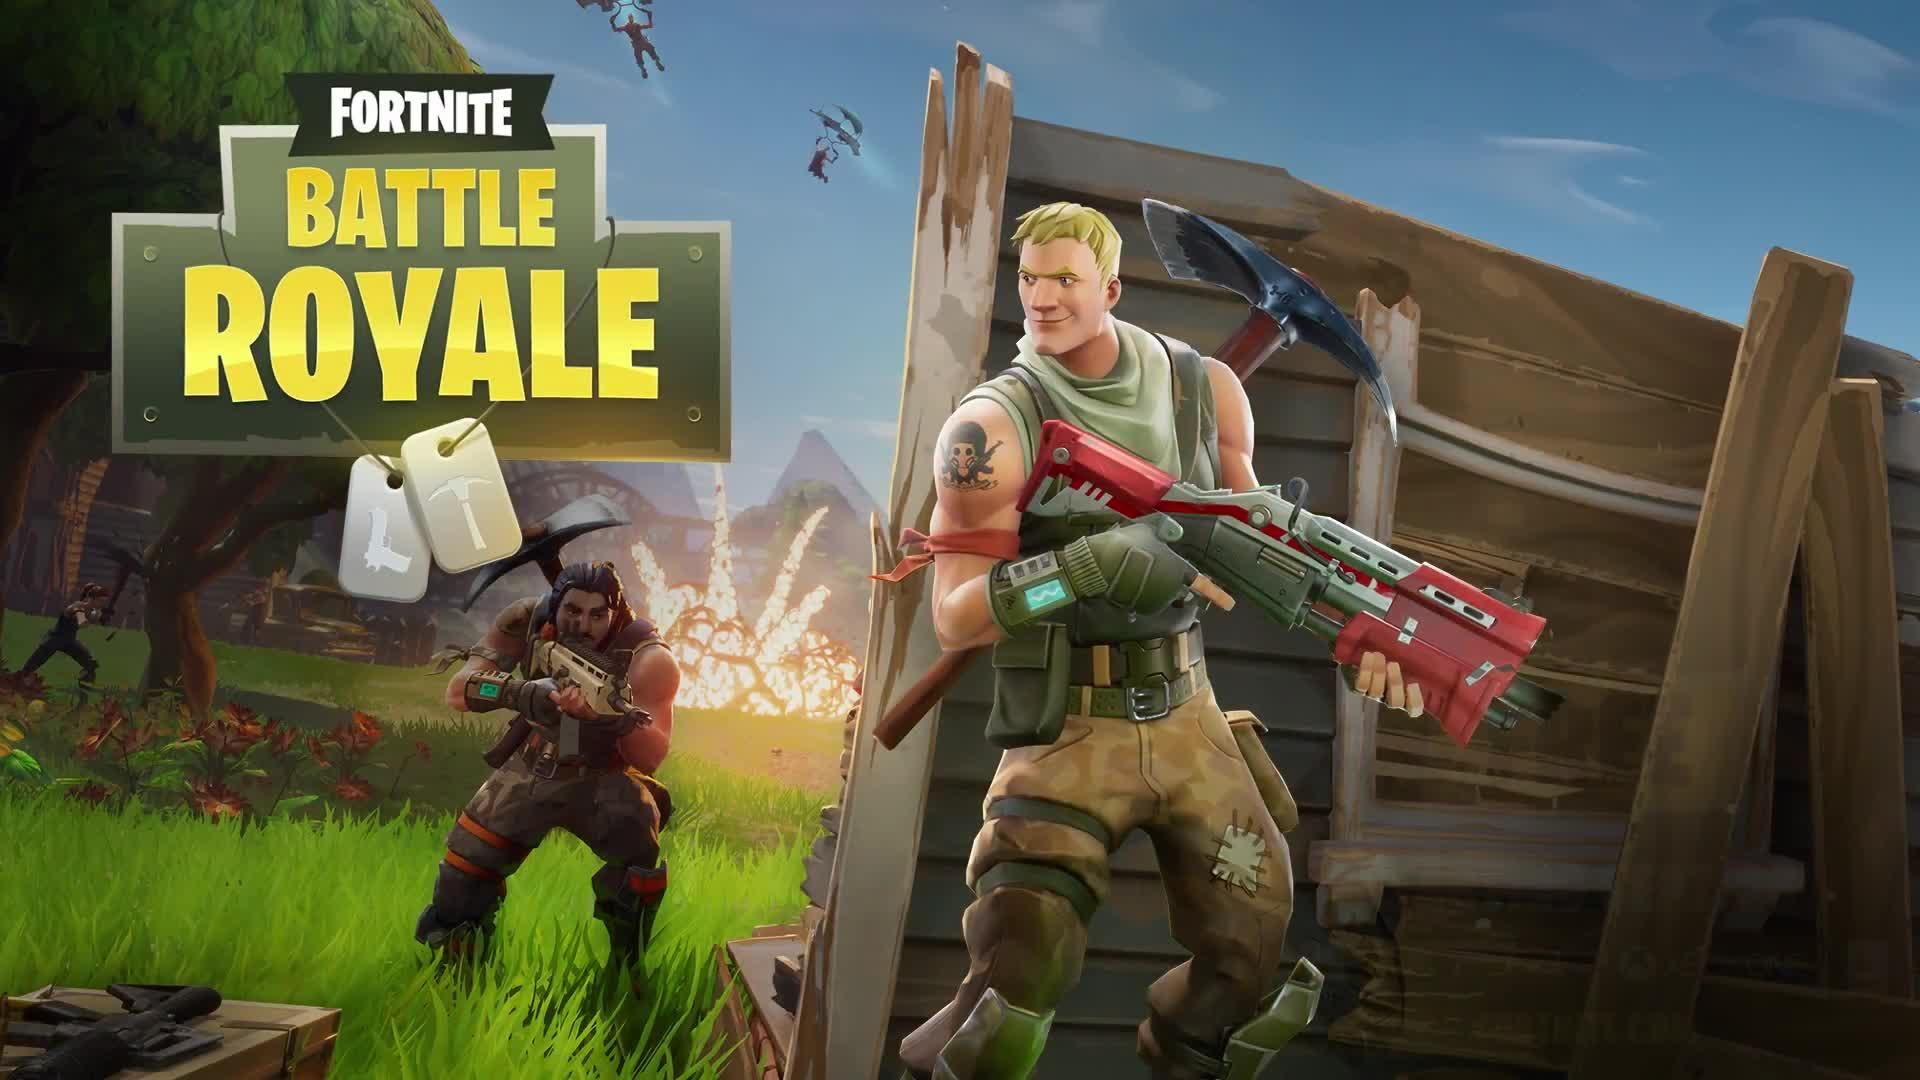 Download Fortnite Battle Royale Wallpaper 62257 1920x1080 Px High